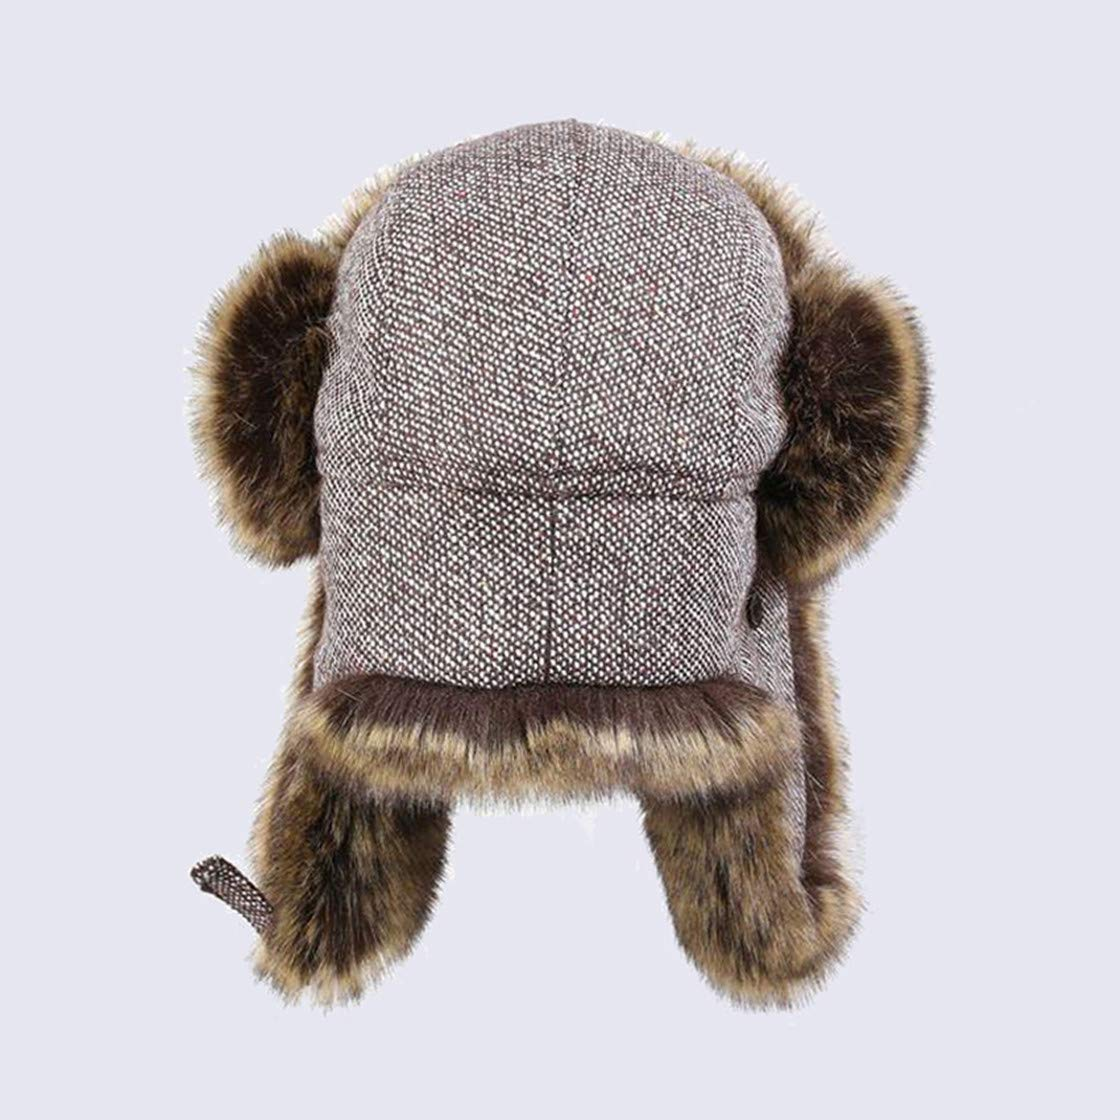 503c943b Men Trapper Hats Faux Fox Fur Bomber Hat Winter Warm Snow Caps Wool Knitted  Cap at Amazon Men's Clothing store: